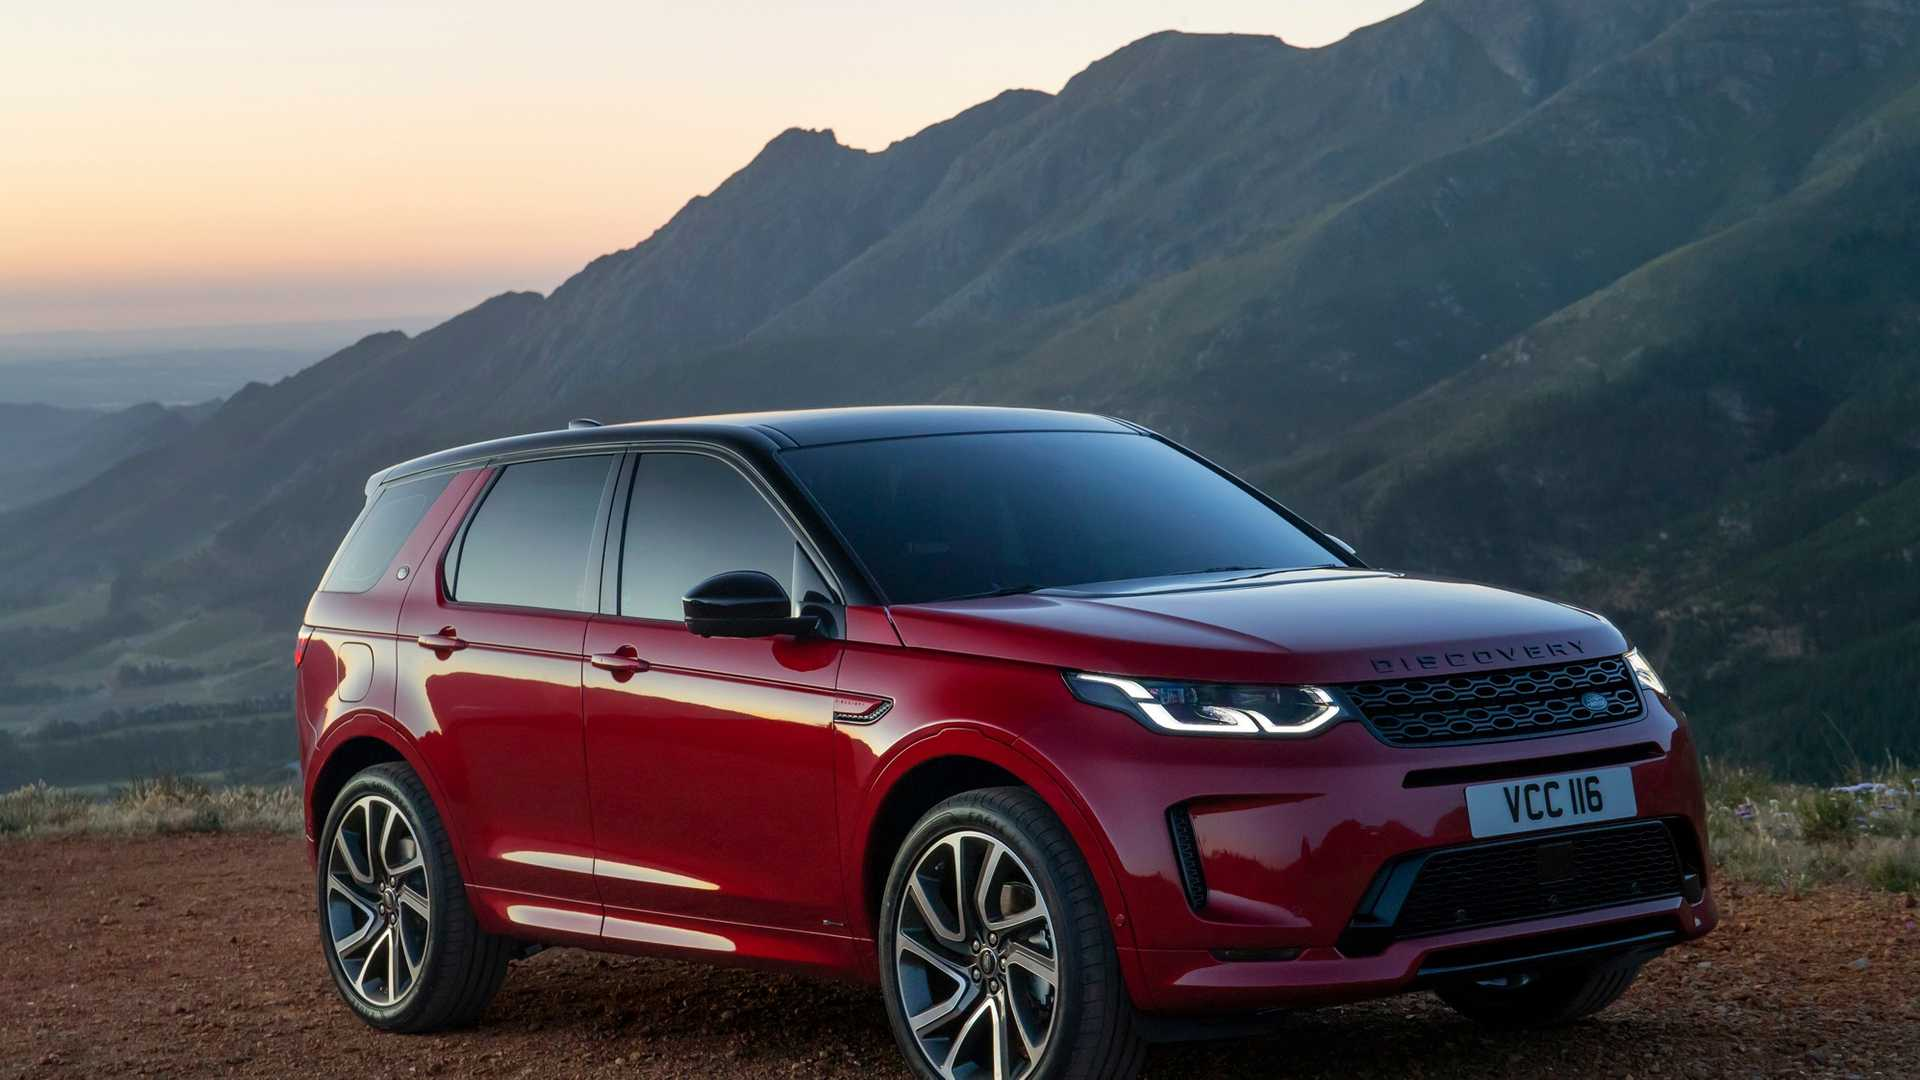 Land Rover has launched the Discovery Sport facelift